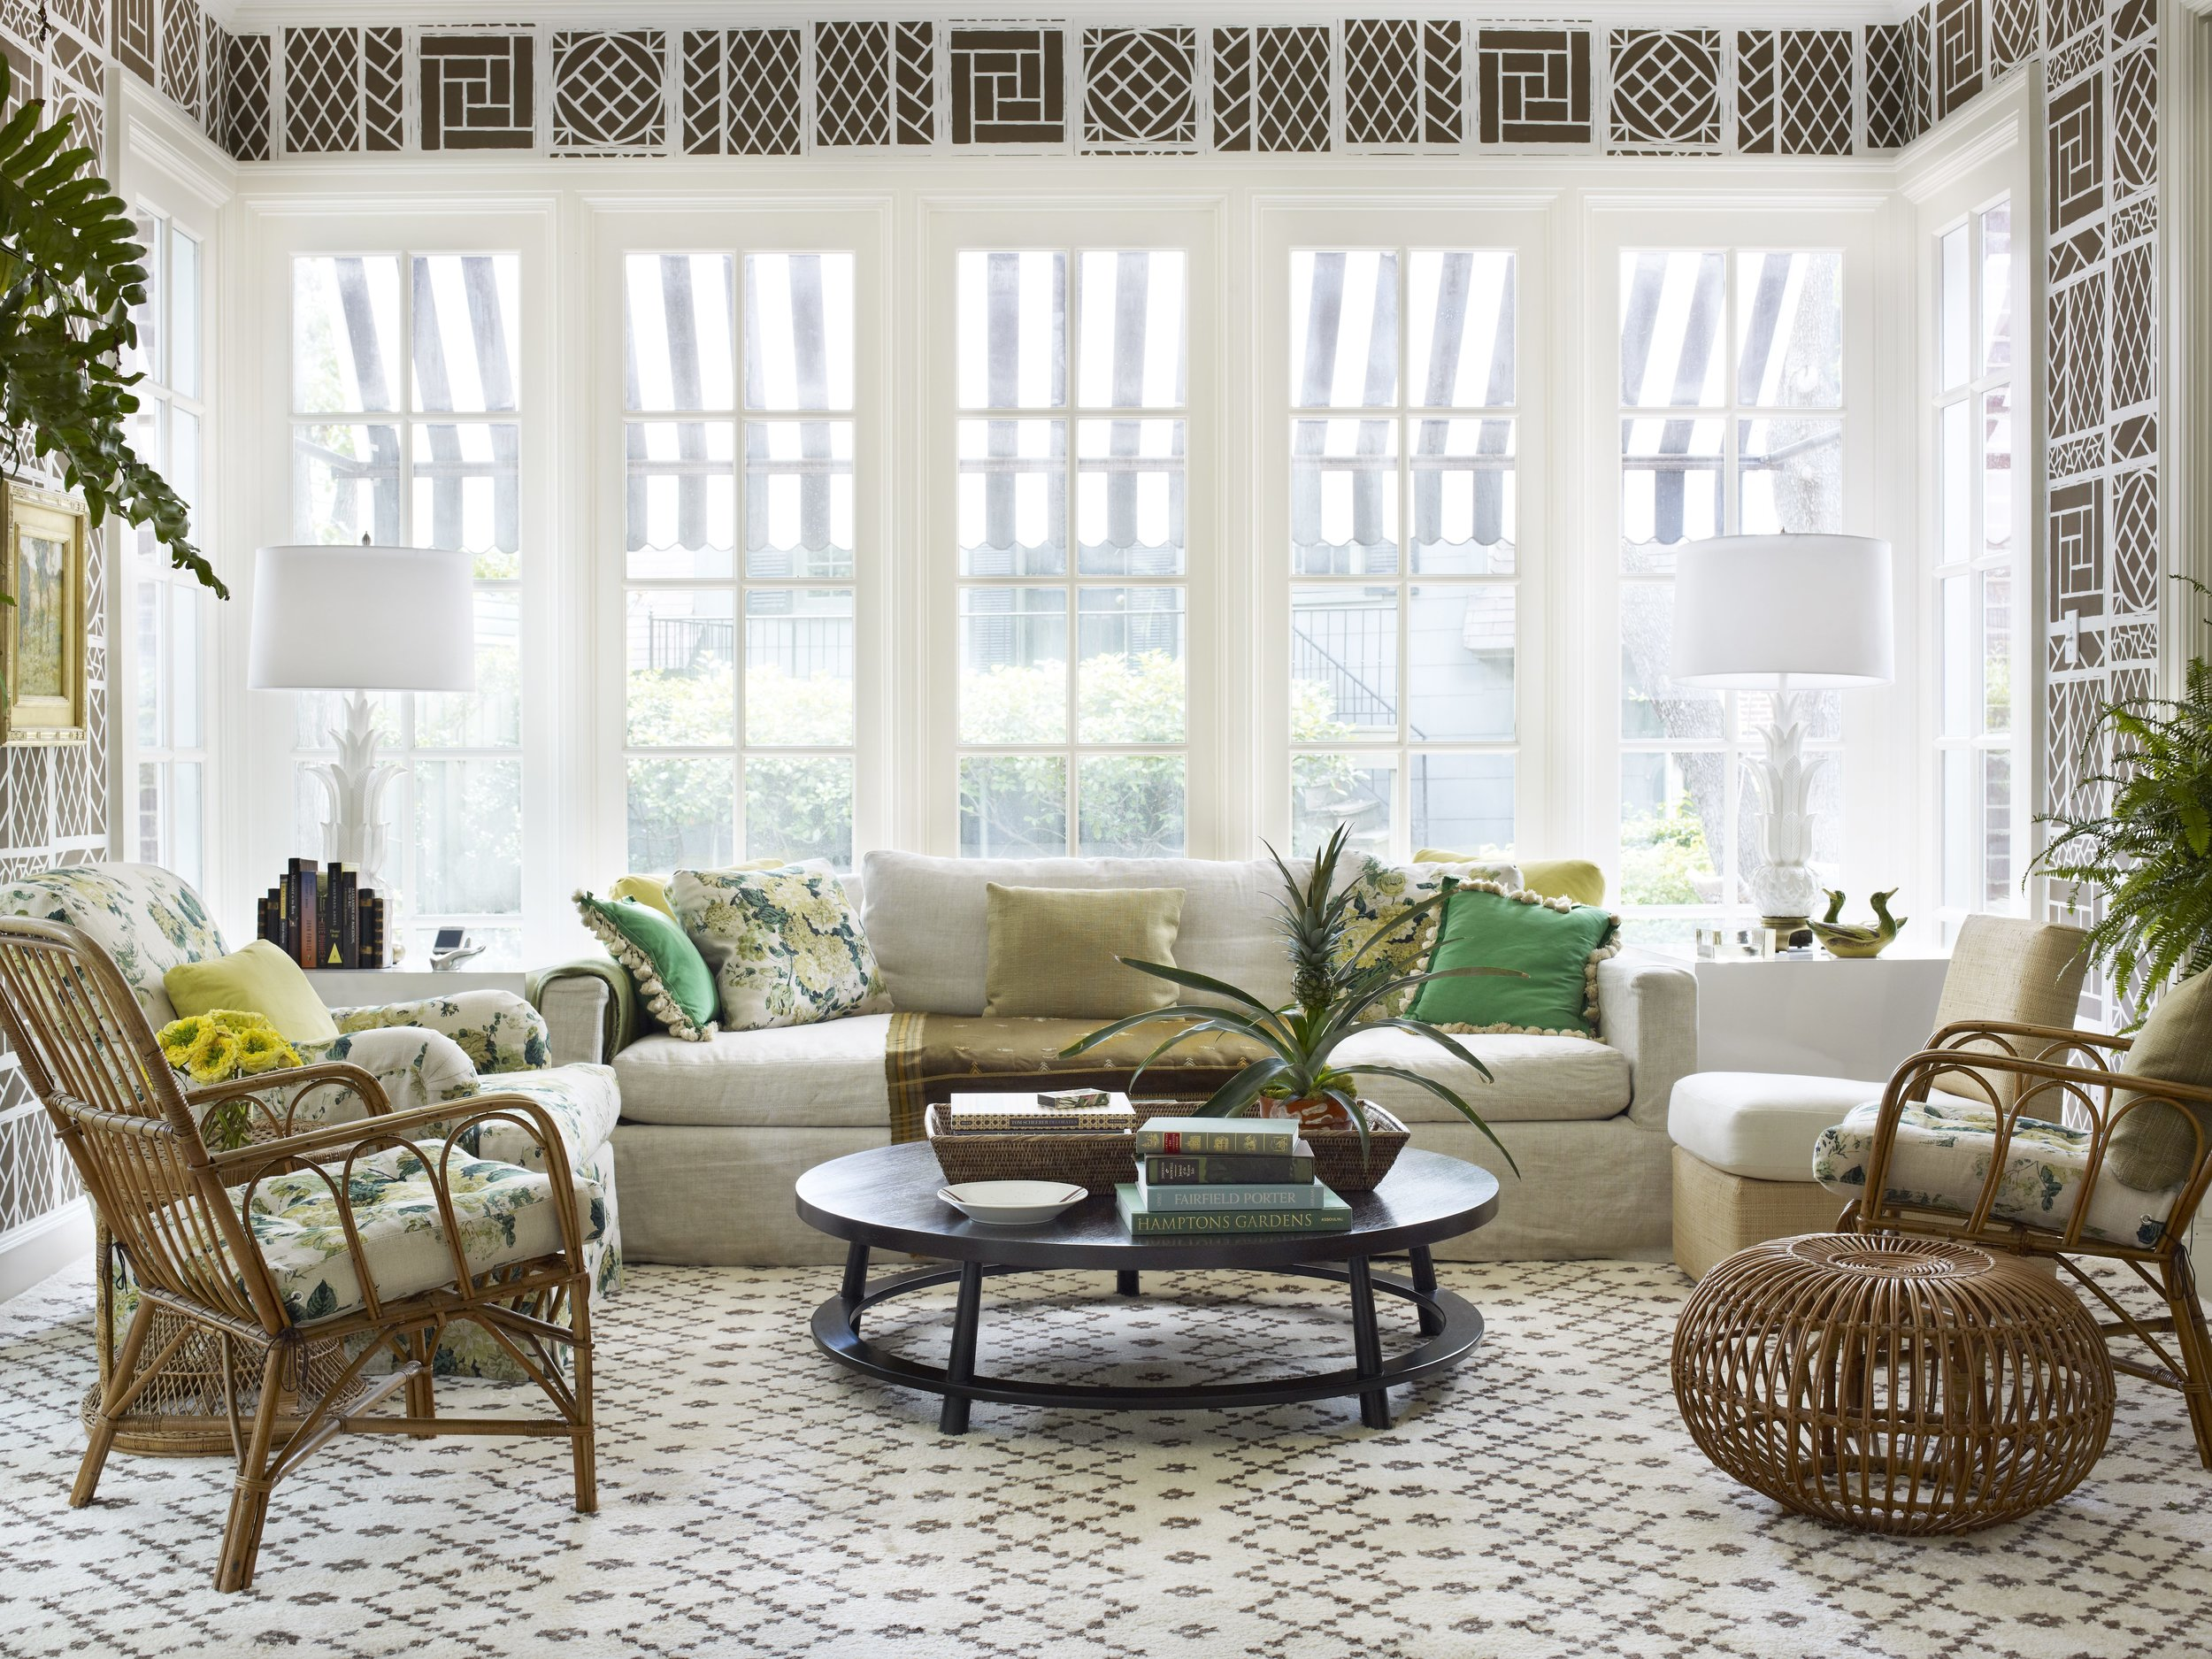 A sunroom in the Highland Park neighborhood of Dallas. With China Seas Lyford Trellis wallpaper and Clarence House's Dahila print on the pillows and chairs.